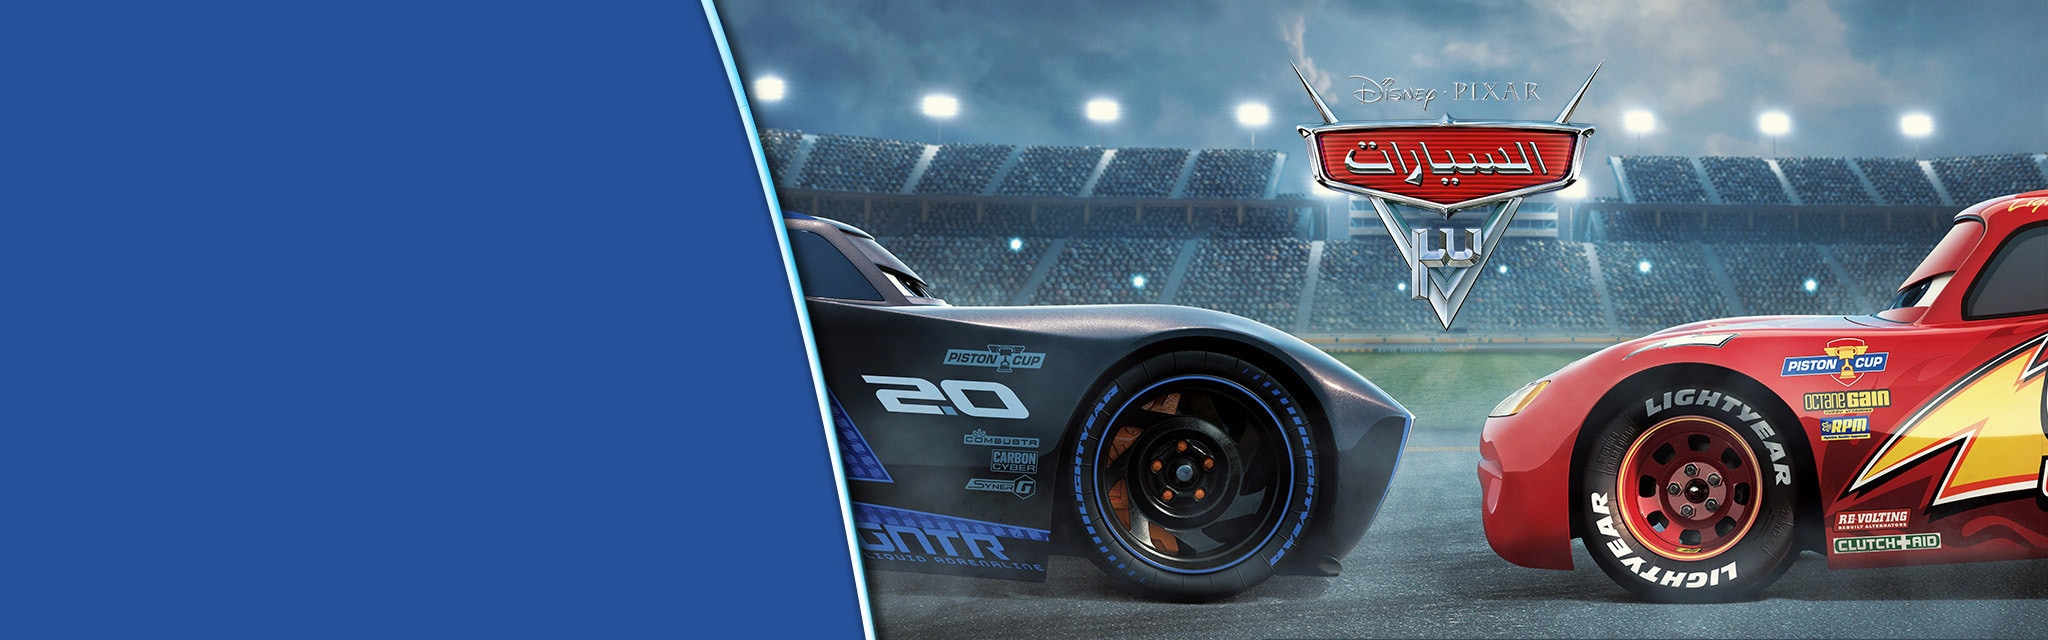 Cars 3 - In Cinemas - Homepage Hero